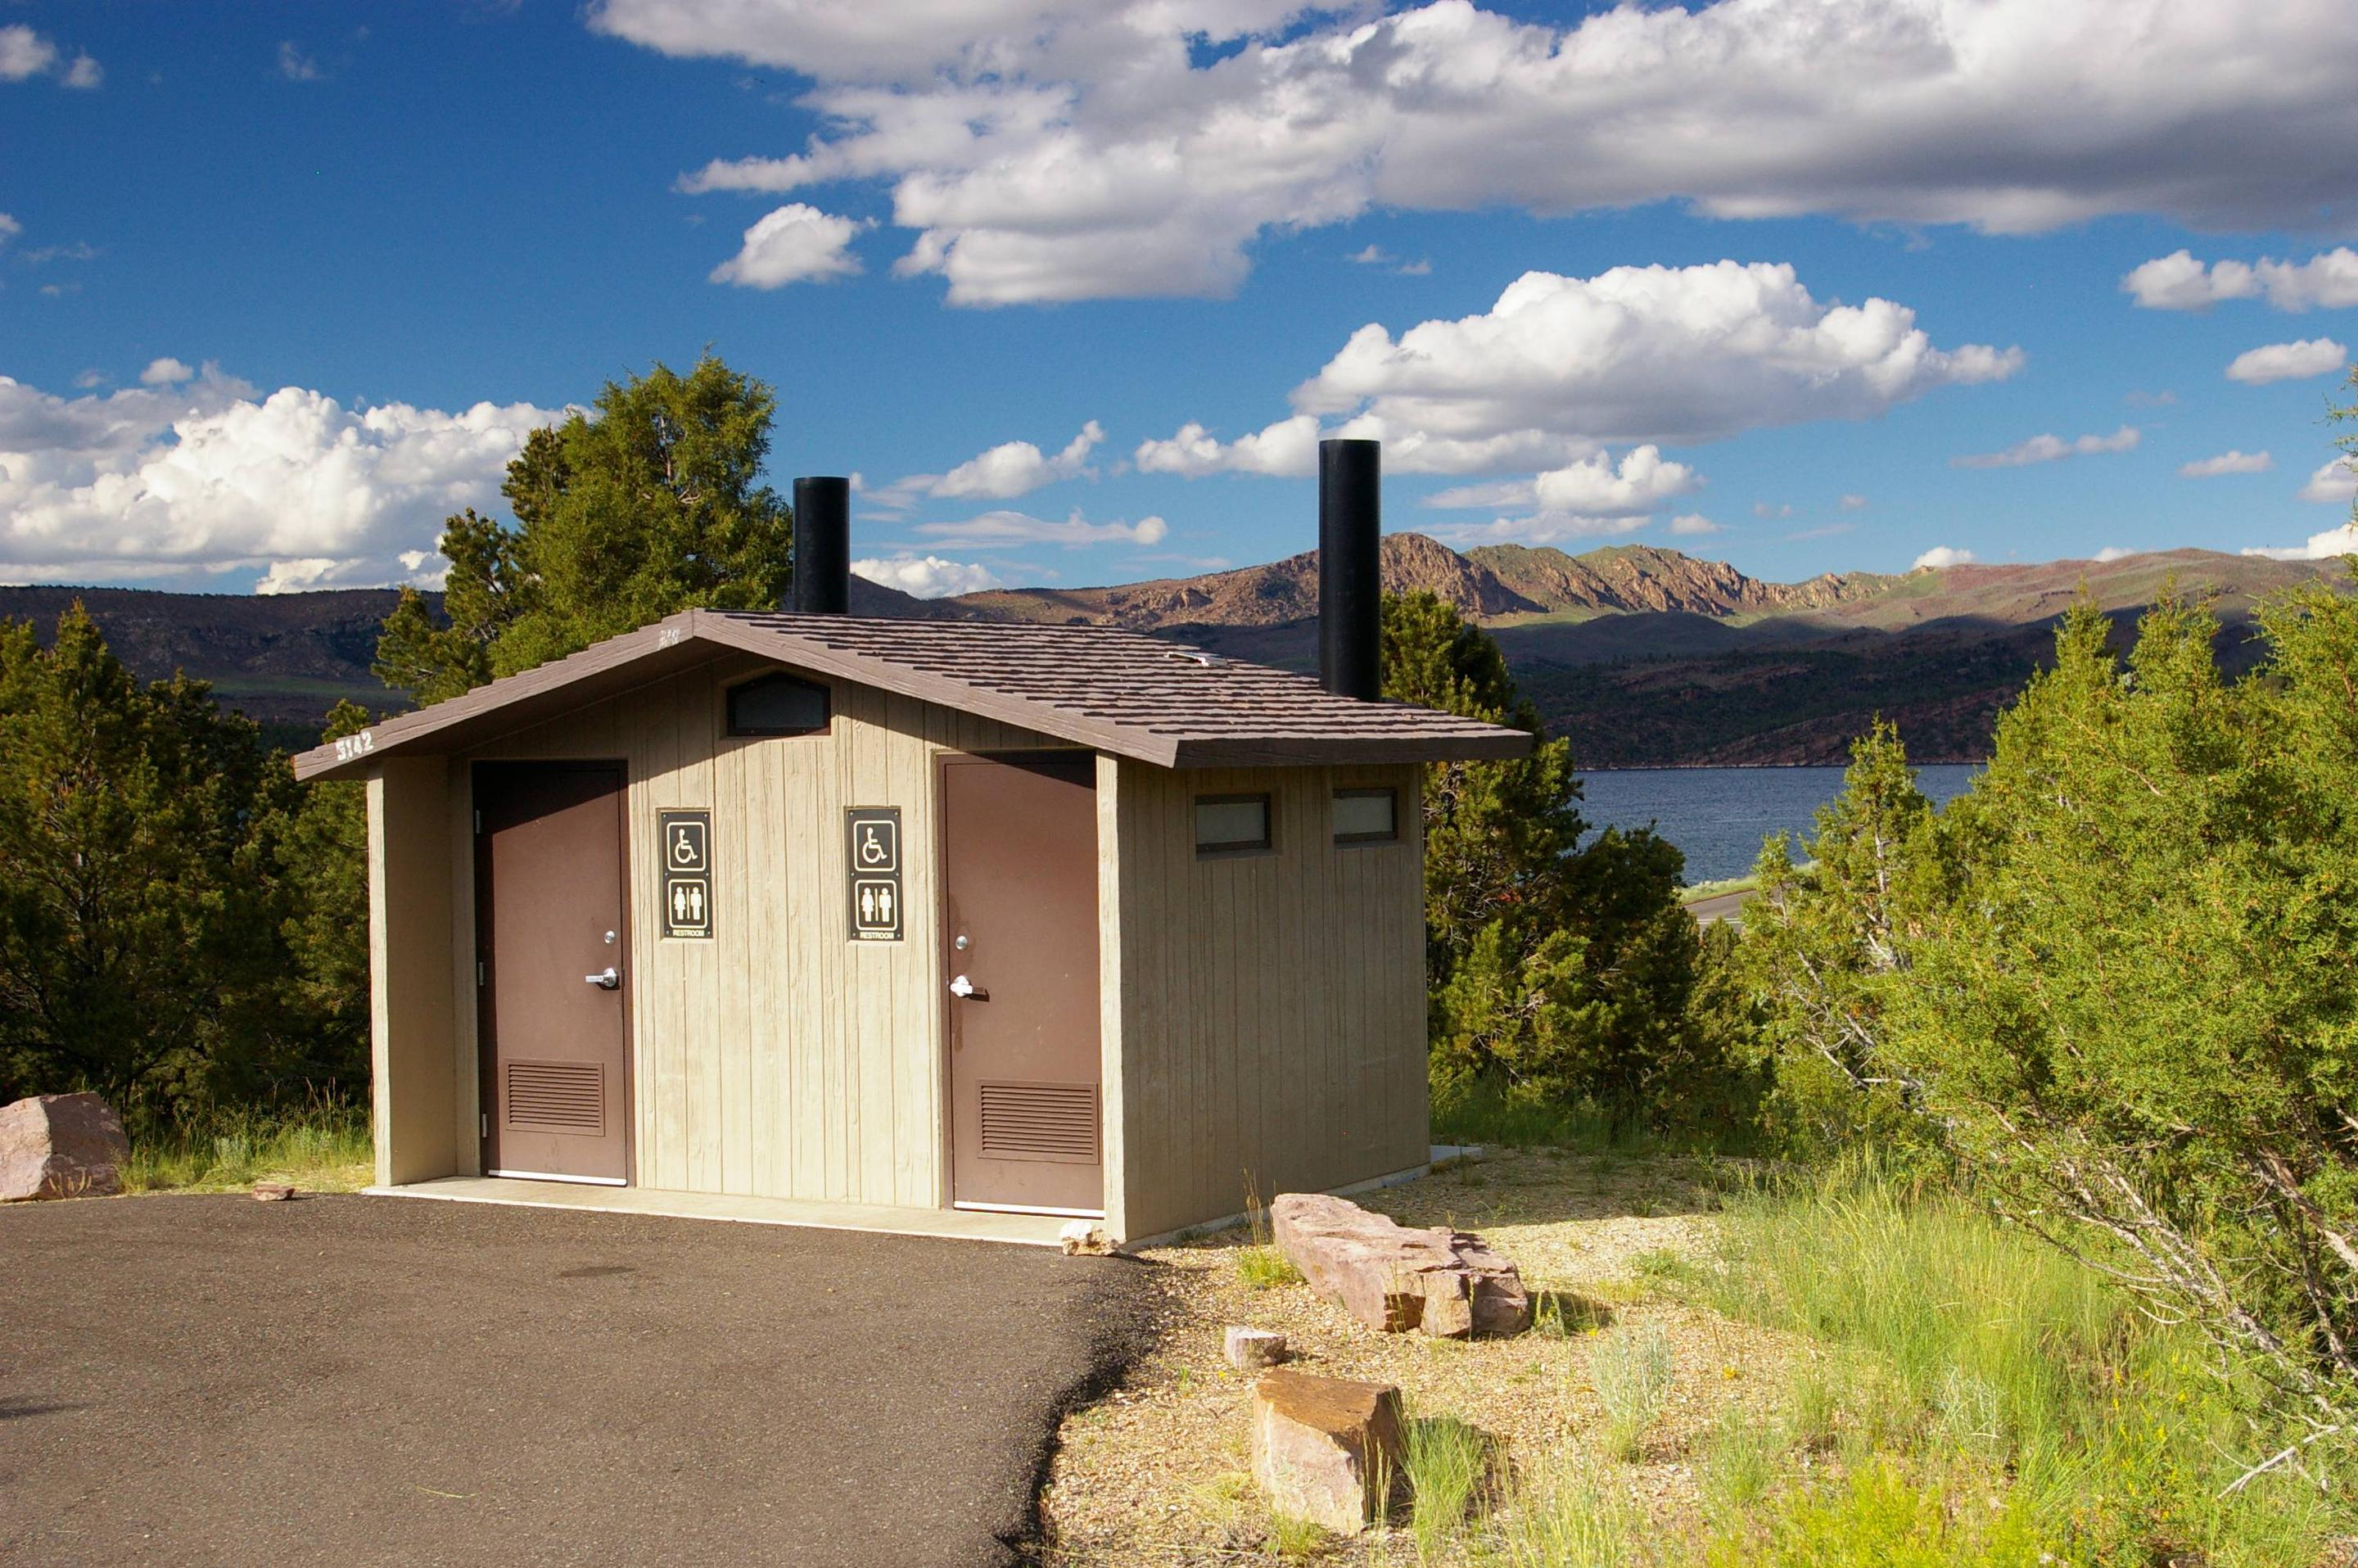 Restroom facilities at Cedar Springs Campground.  The lake can be seen in the background.Cedar Springs Campground: Restroom Facilities